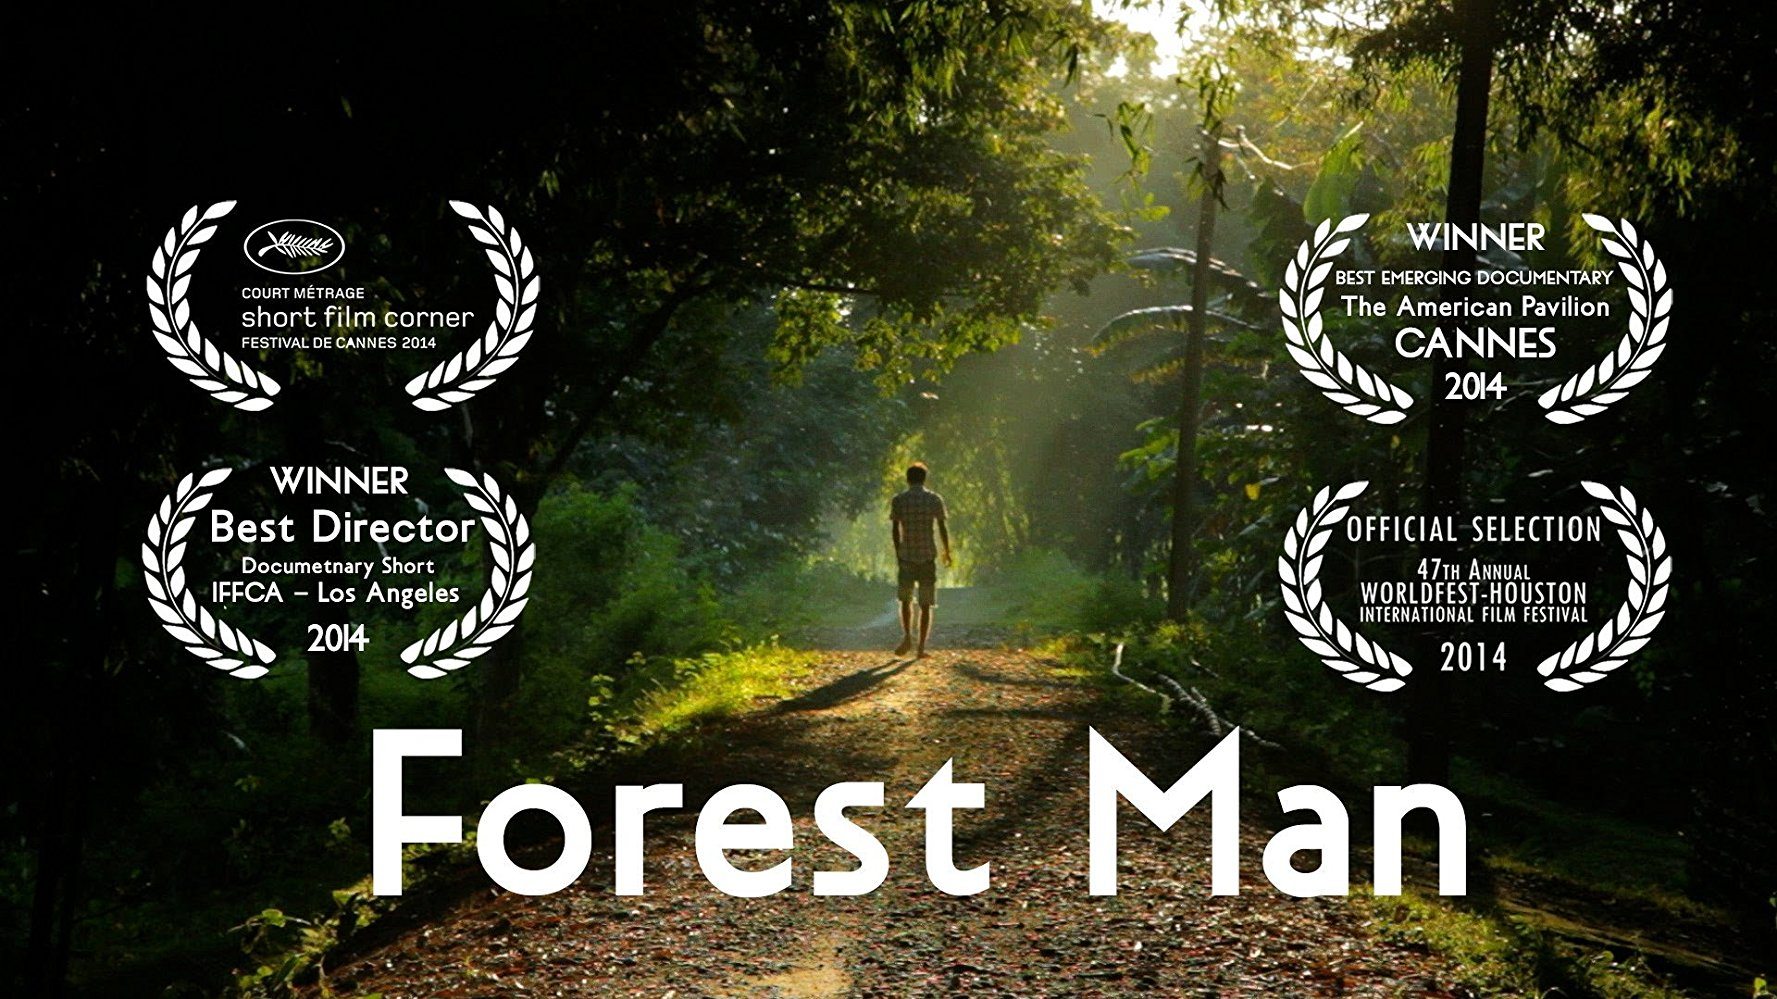 The Forest Man